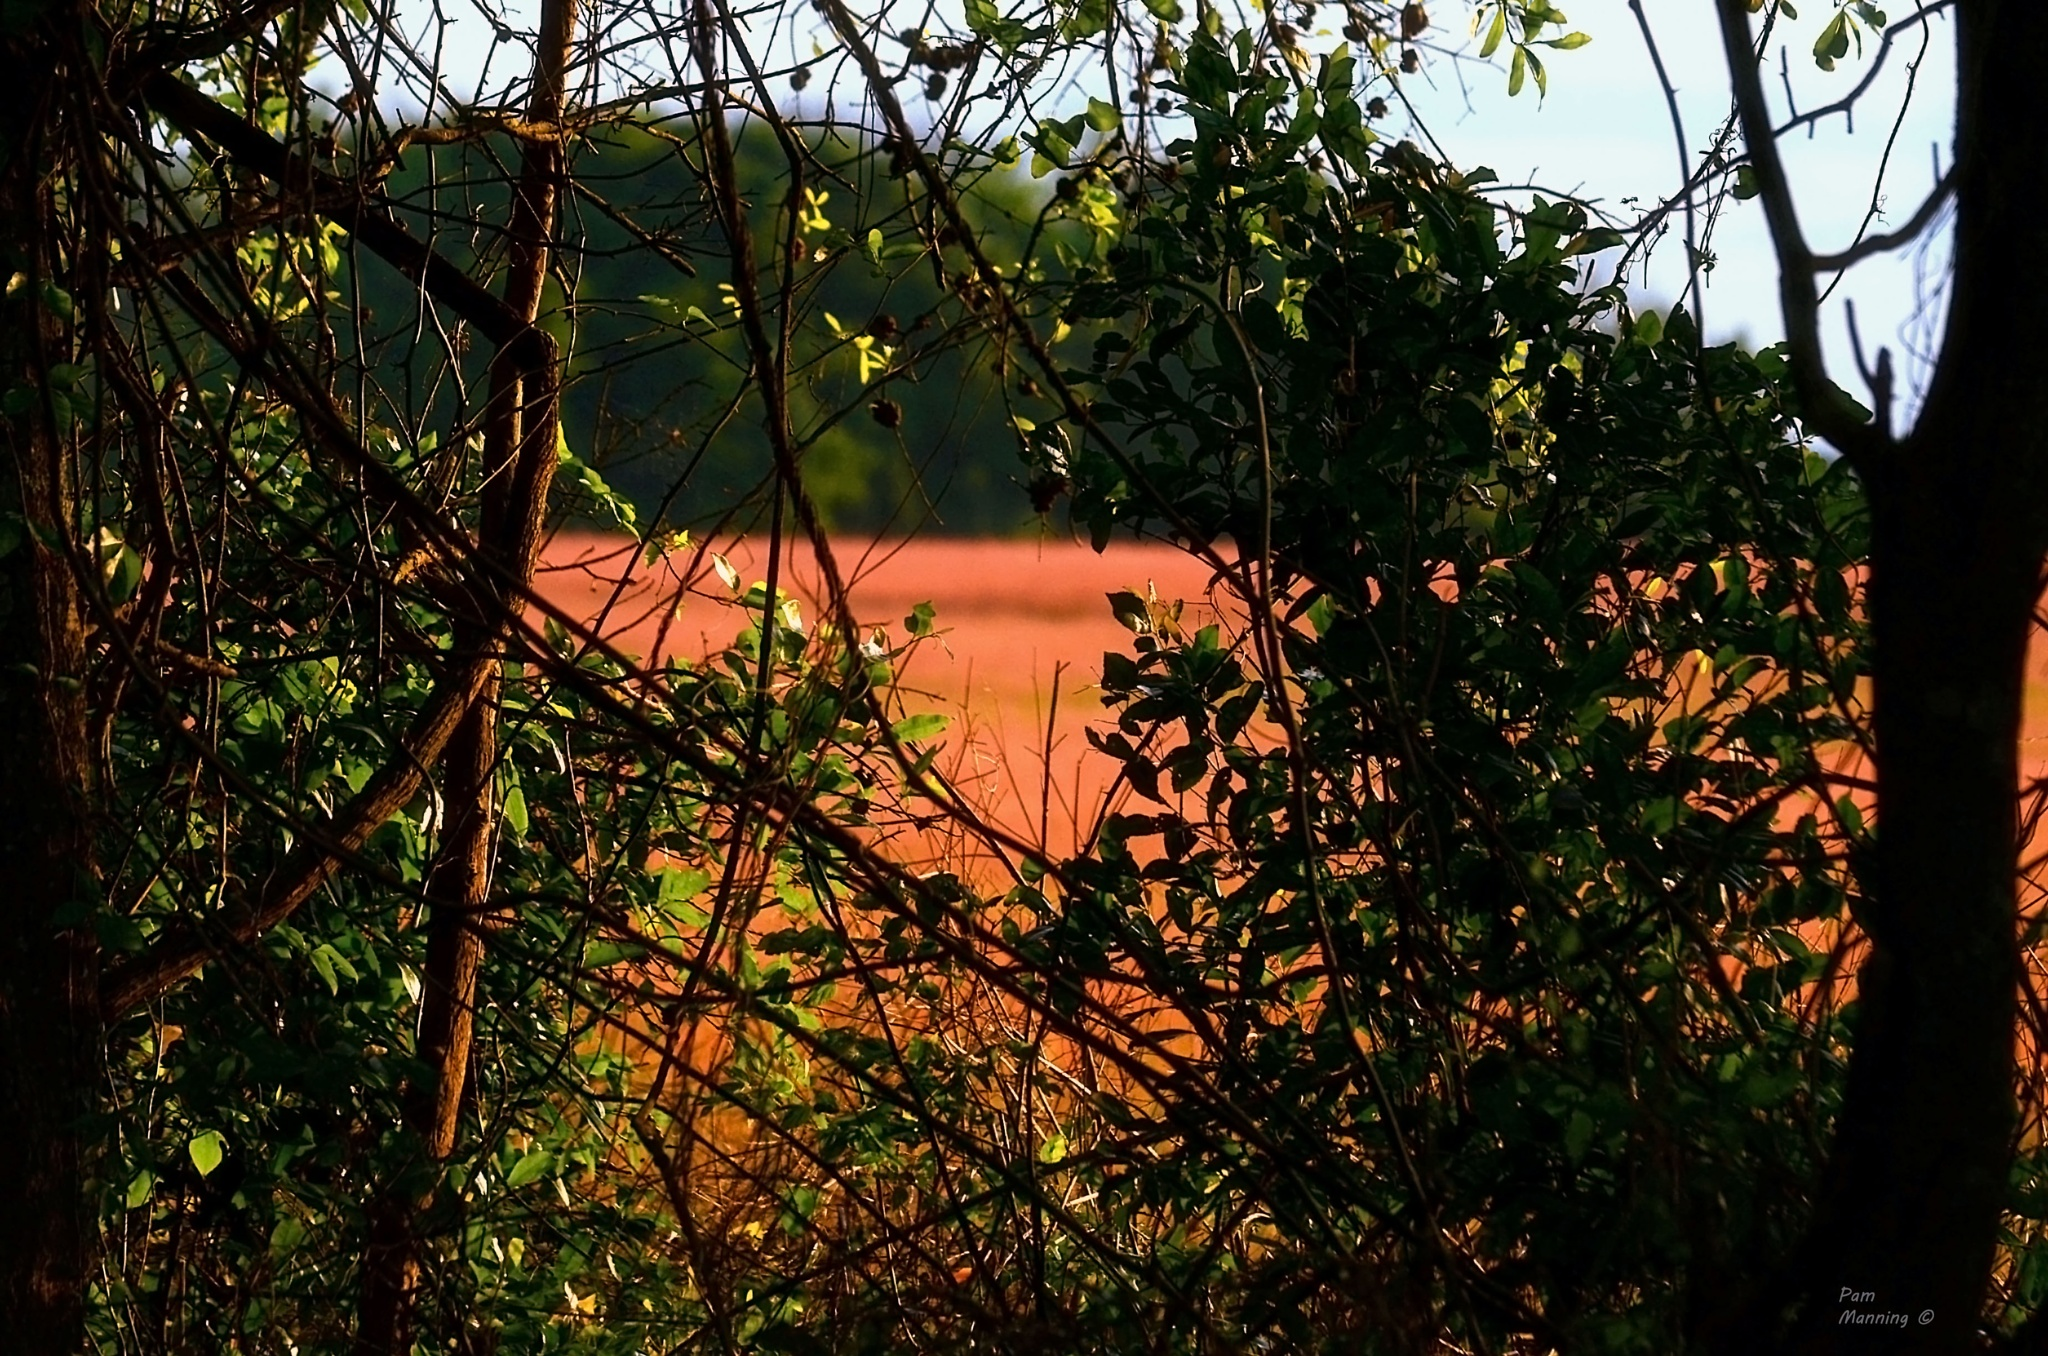 Vines and wheat w a touch of sunshine by pam.satterfieldmanning